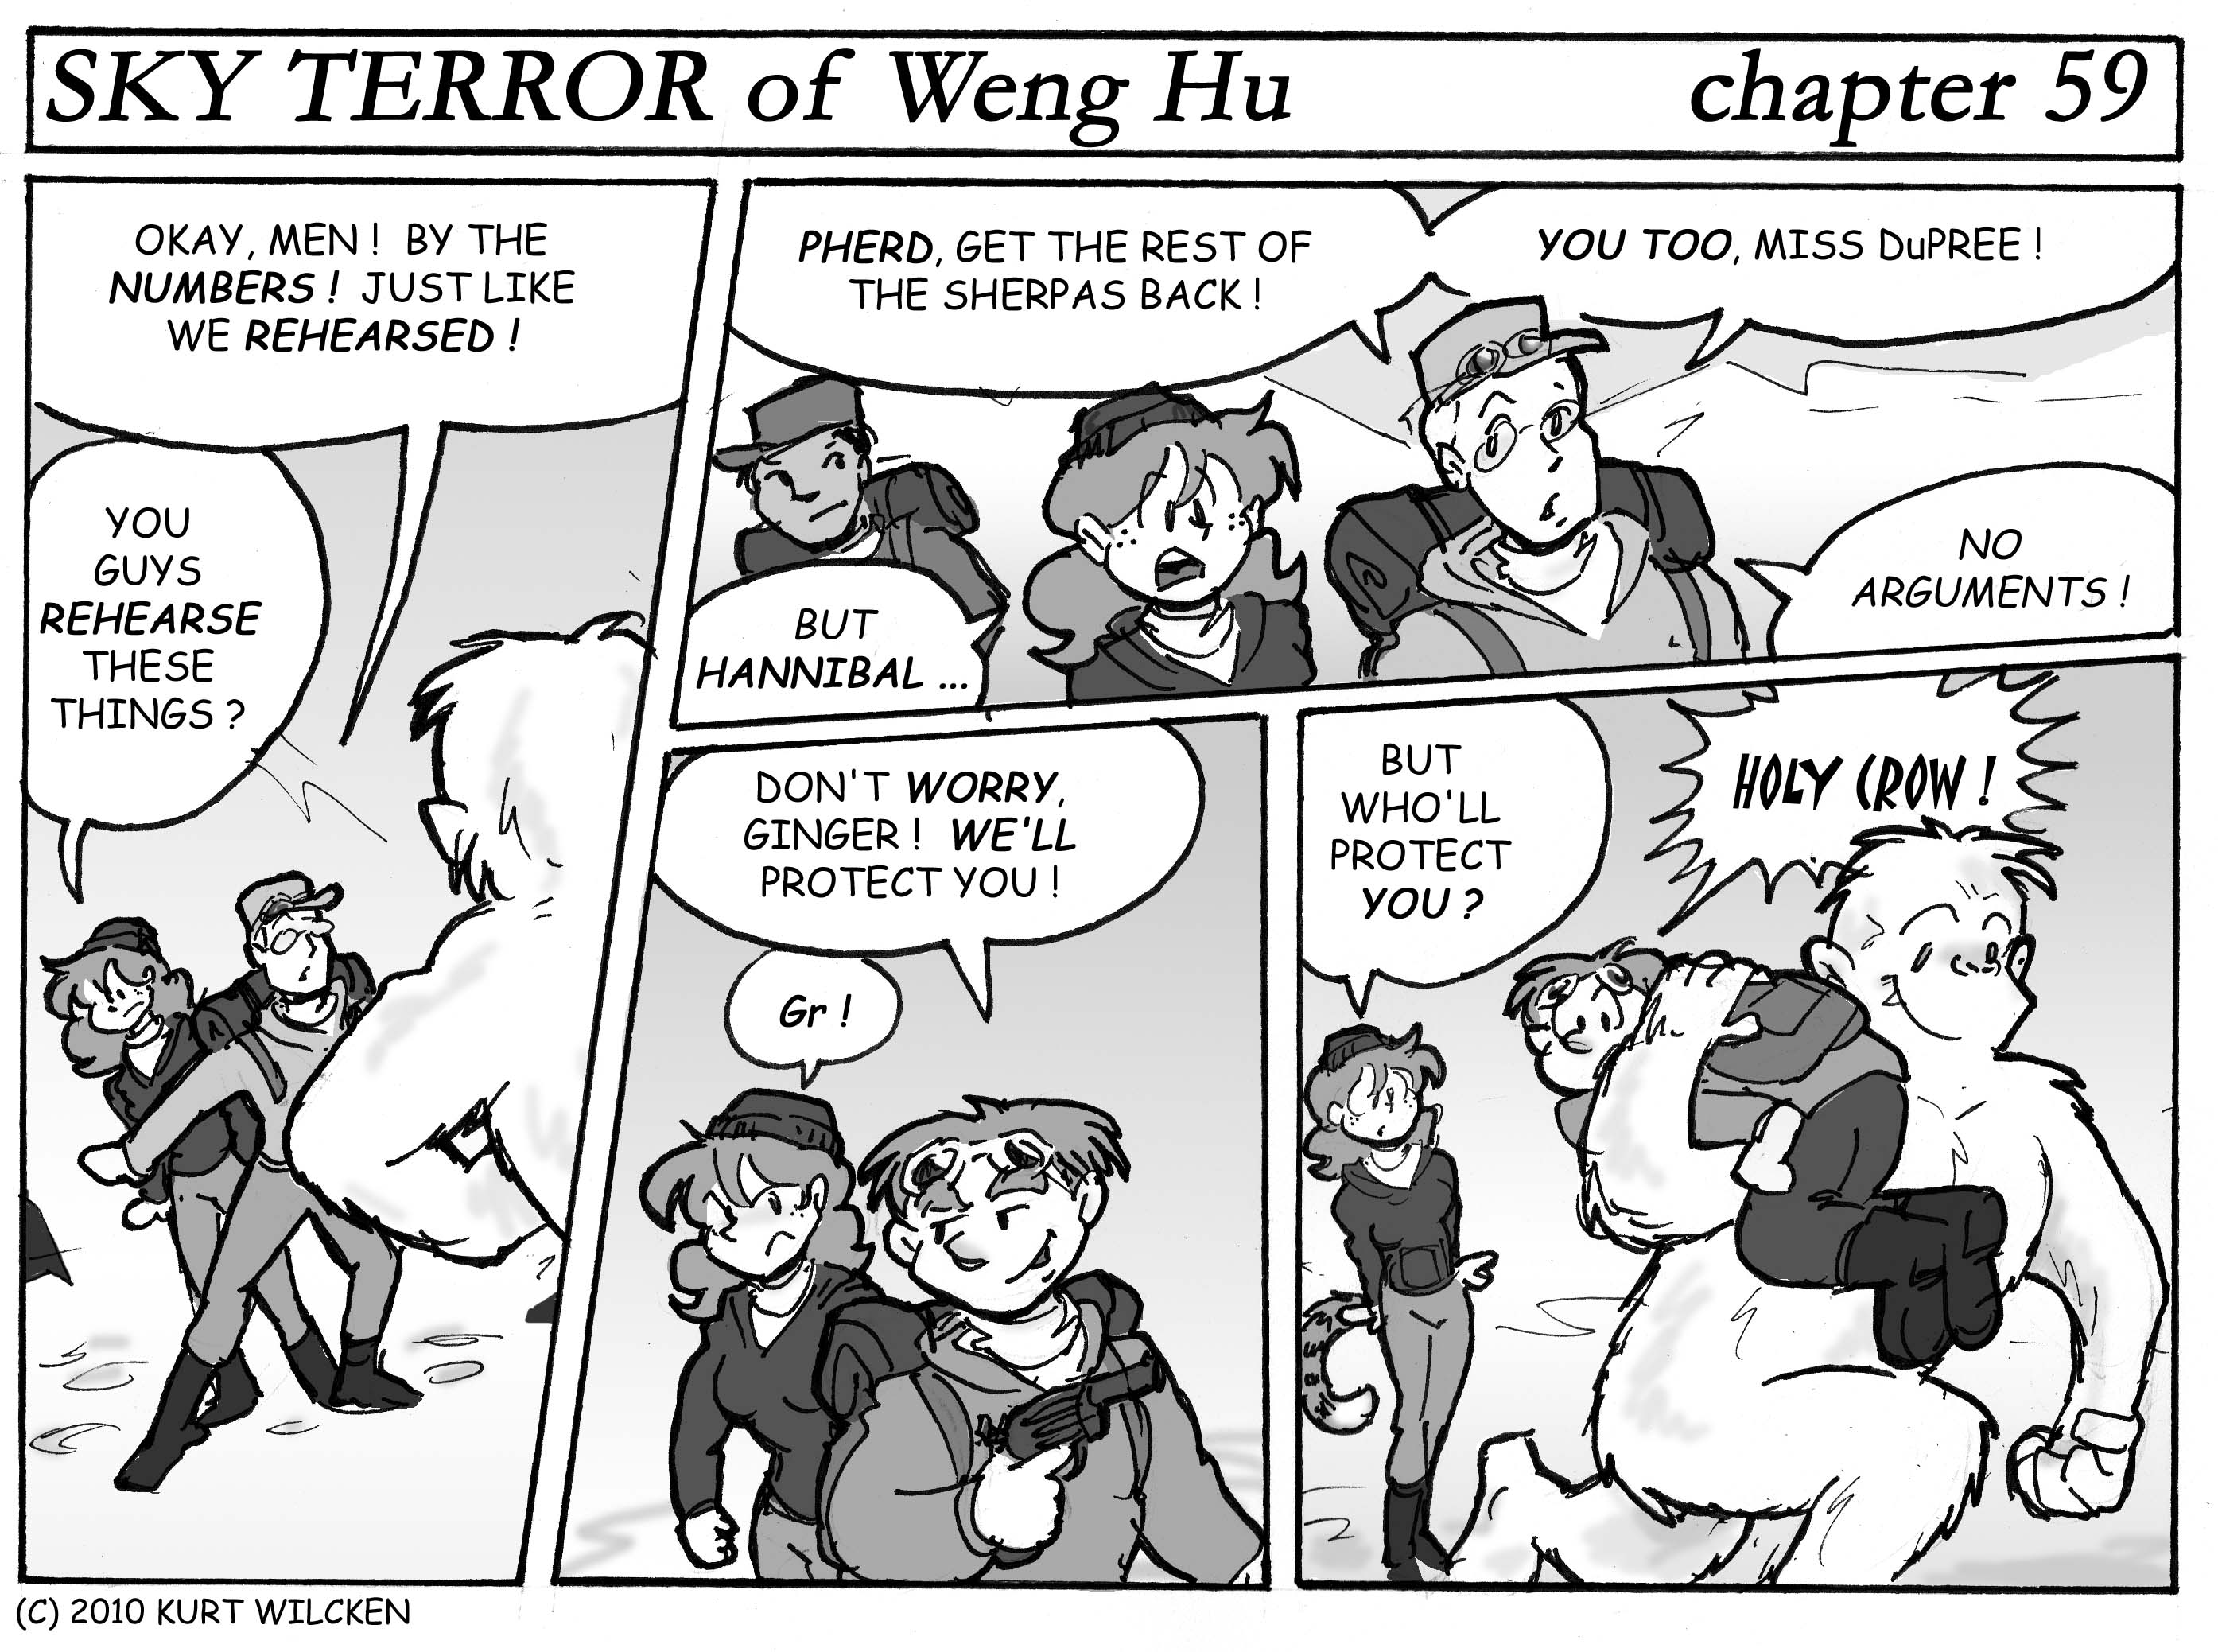 SKY TERROR of Weng Hu:  Chapter 59 — The Yeti Attacks !